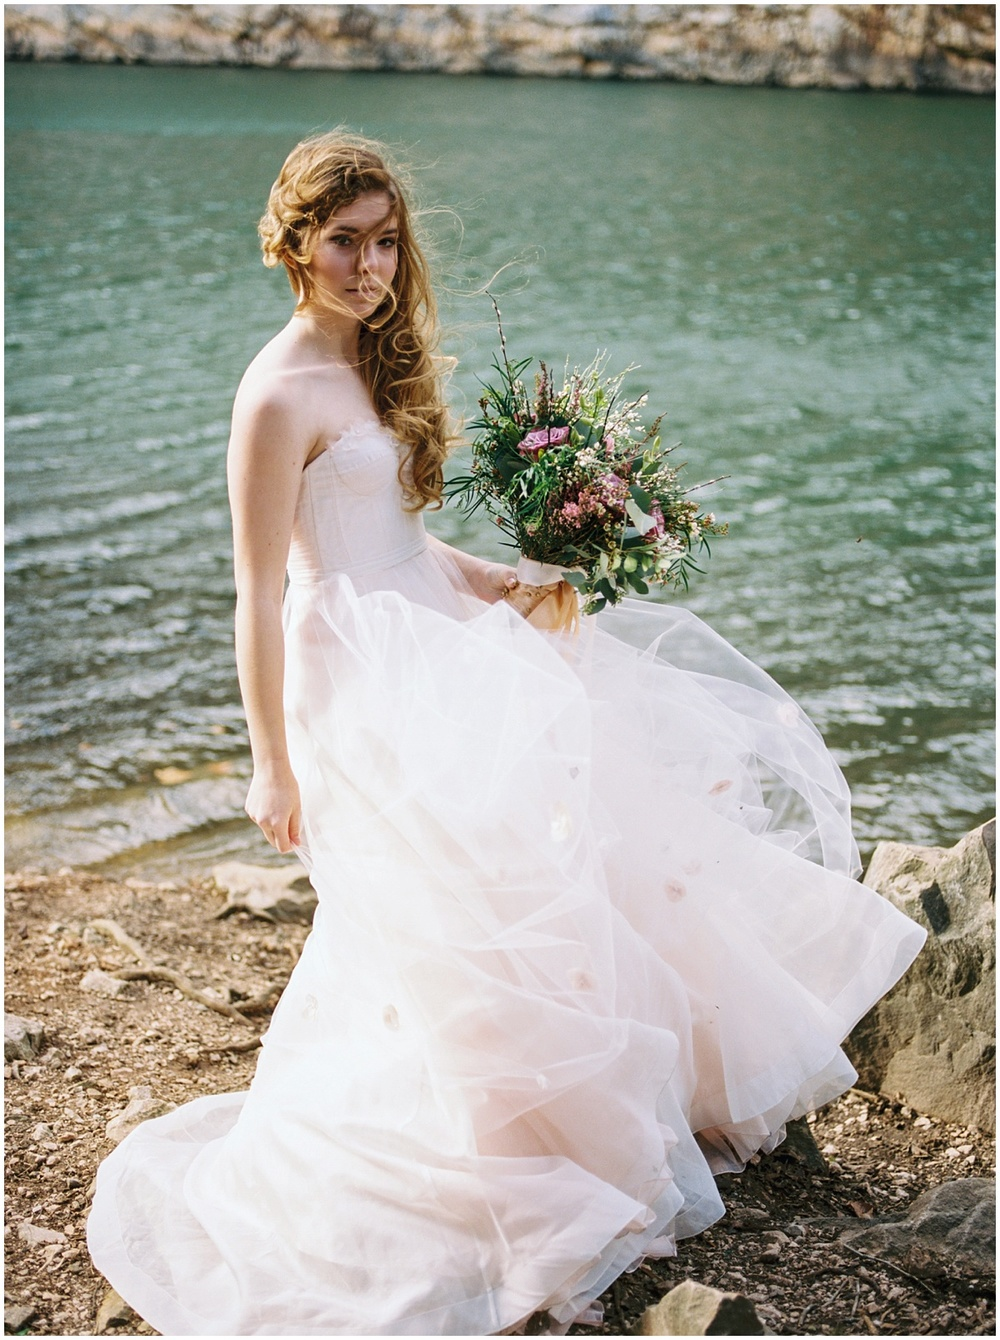 Abigail_Malone_Film_Wedding_Photography_KNoxville_TN_Blush_Dress_Outdoor_Windy_Pink_and_Green_Wedding_0017.jpg